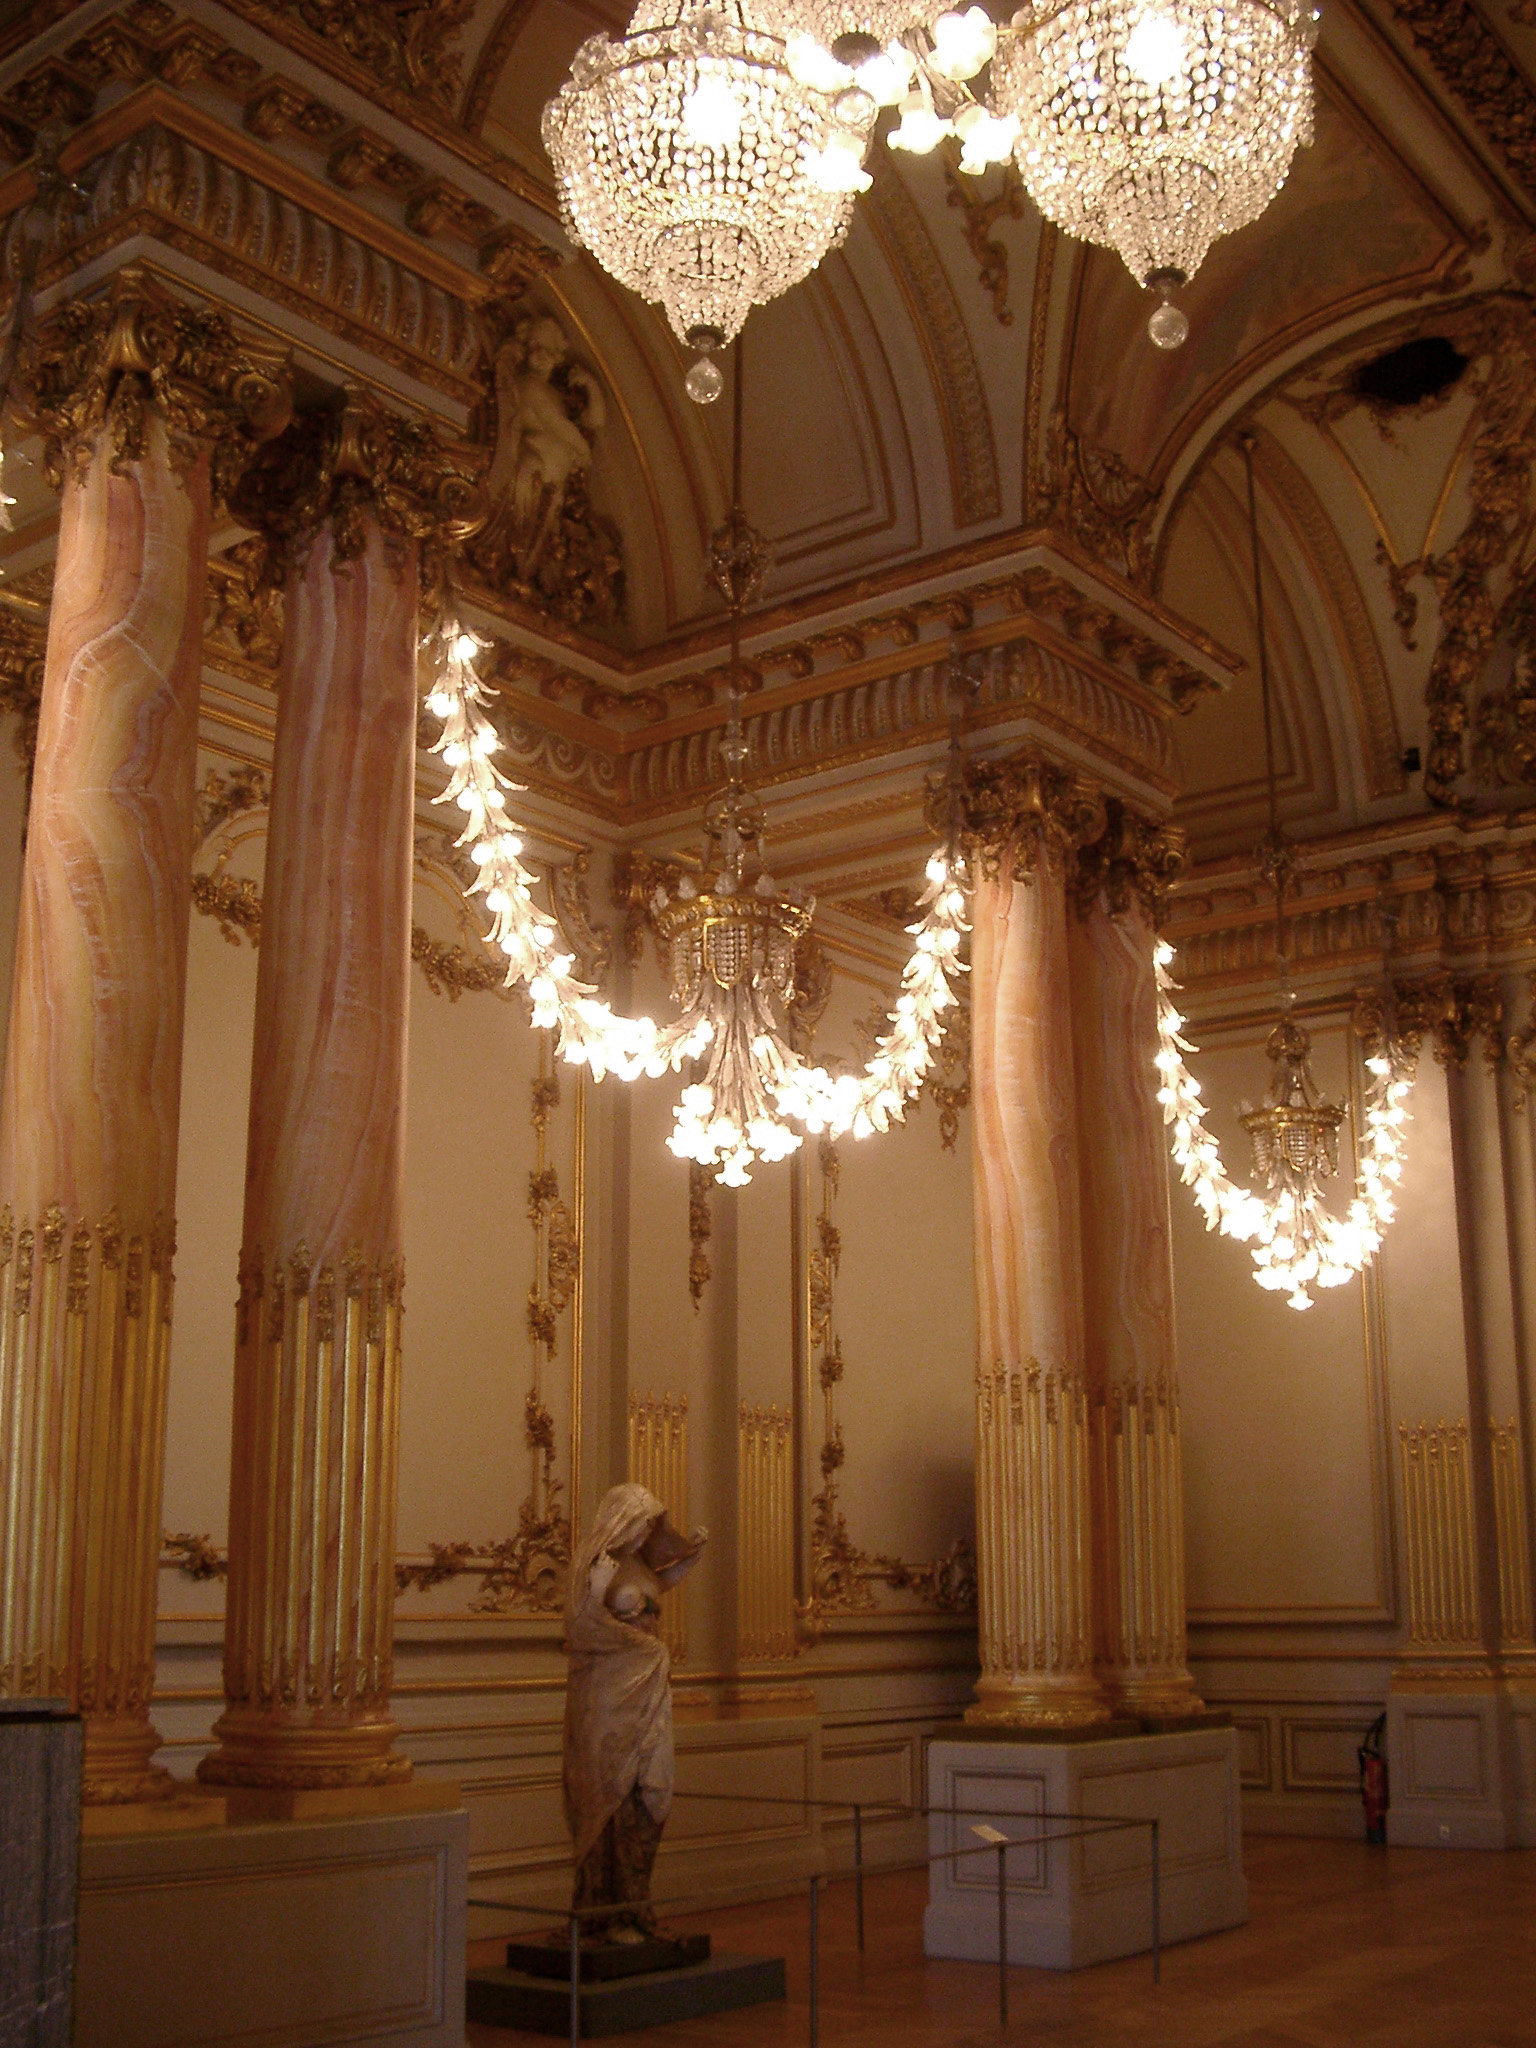 Old Vintage Elegant Architectural Building Interior Design with Chandeliers.